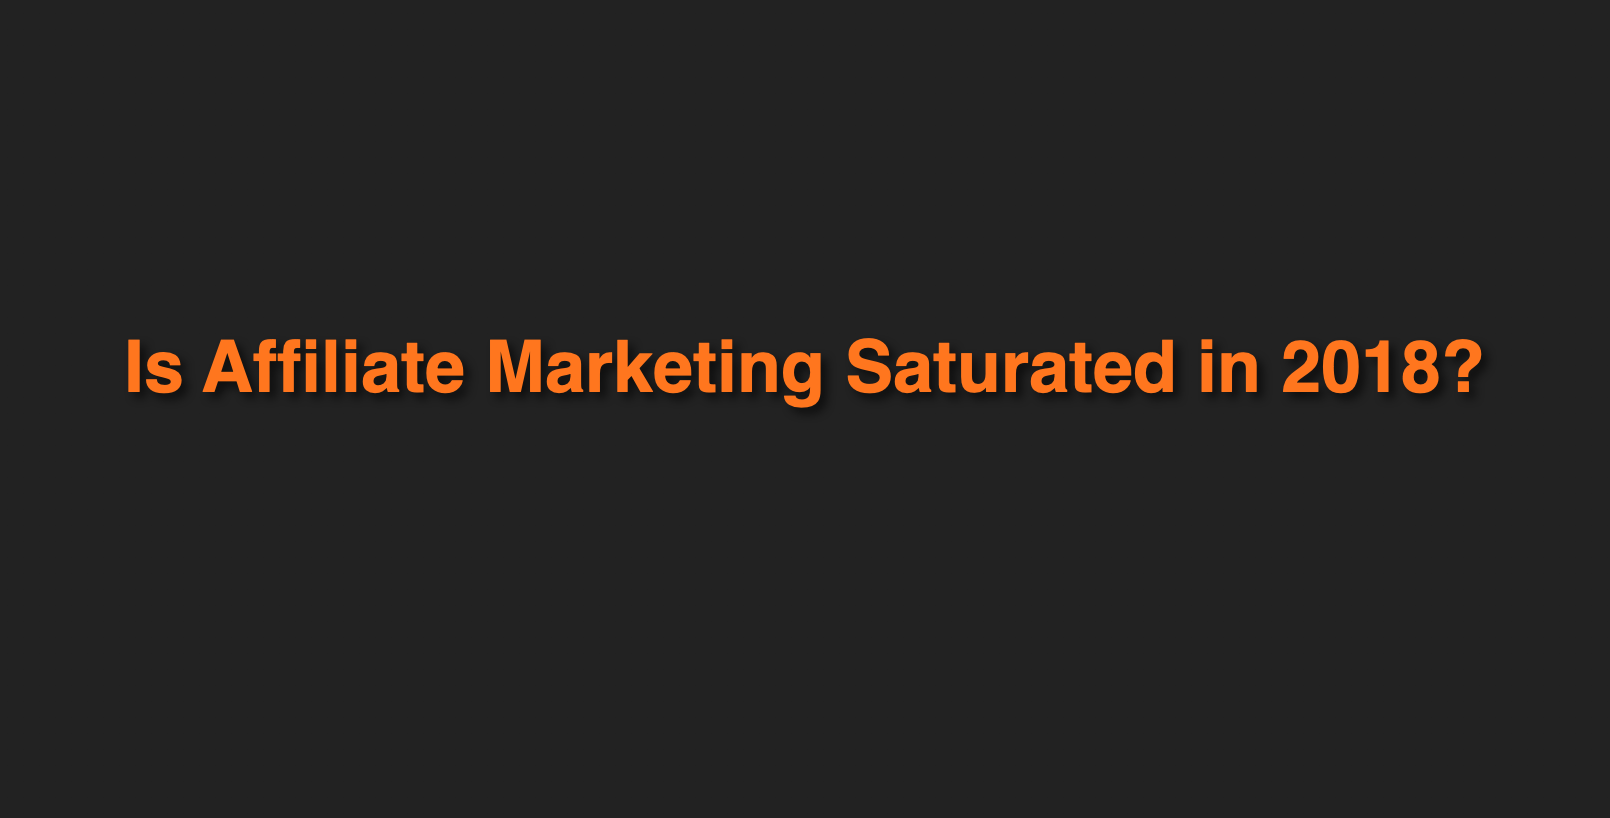 affiliate marketing saturated